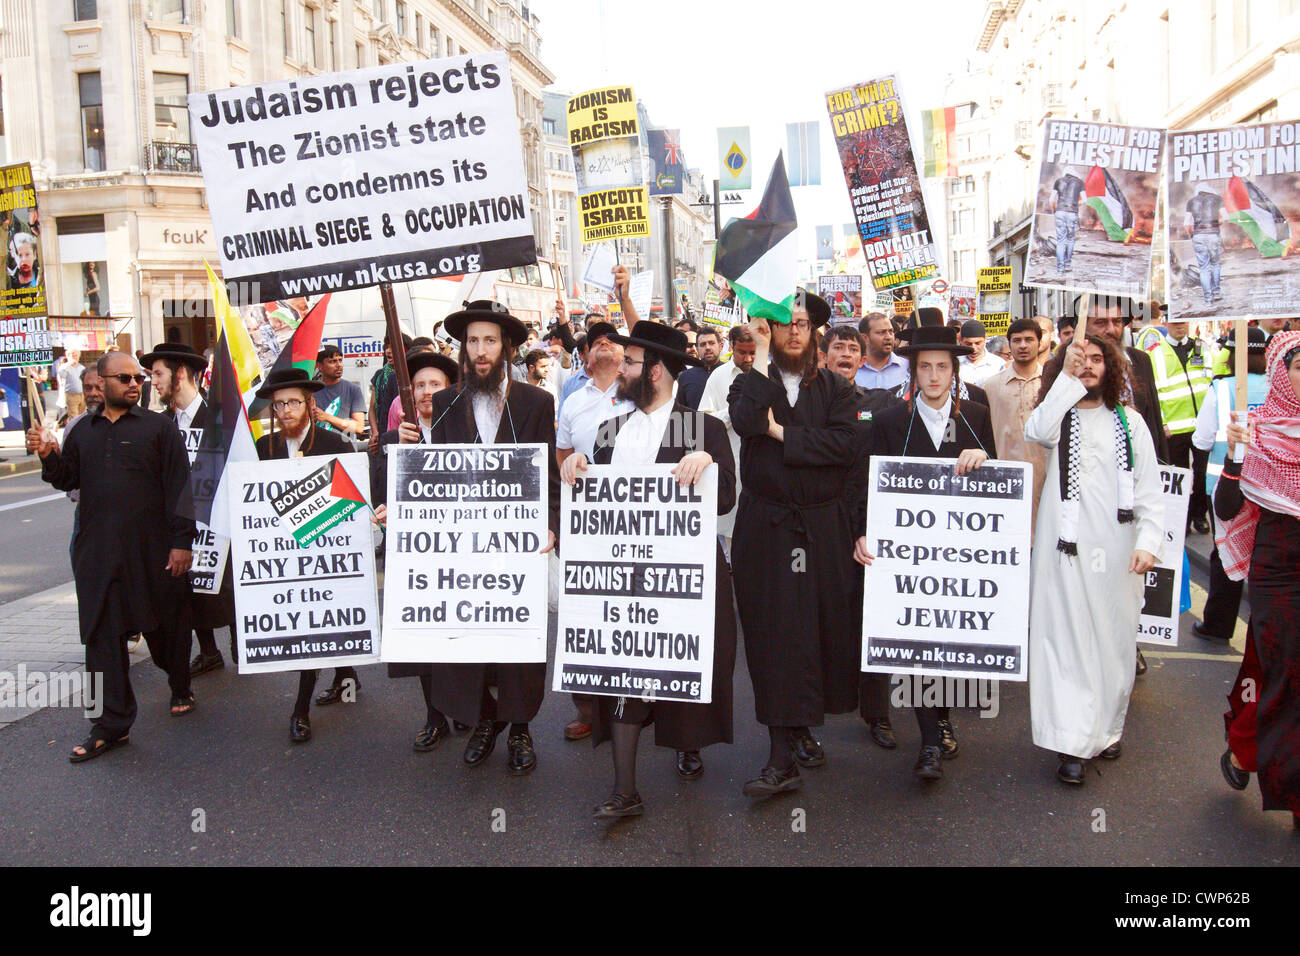 The 2012 Al Quds Day march, calling for a boycott of Israeli products and a free Palestine, takes place in London - Stock Image